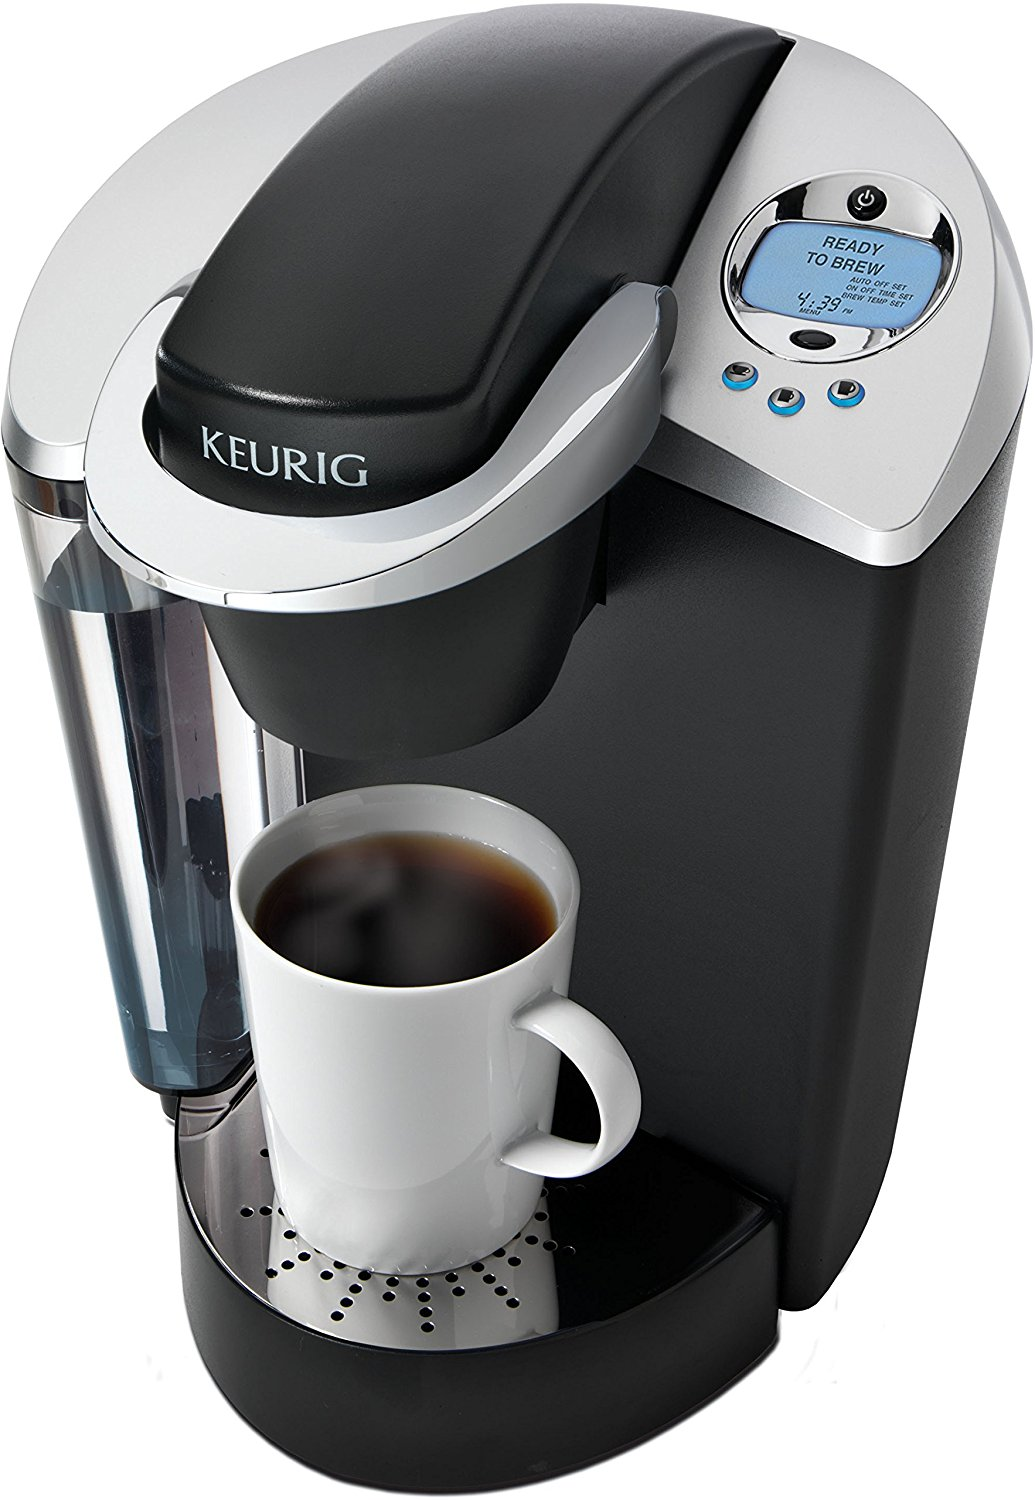 Best Coffee Maker One Cup : Best Single Cup Coffee Maker 2017 - Reviews & Buyer s Guide Health and Personal care Products